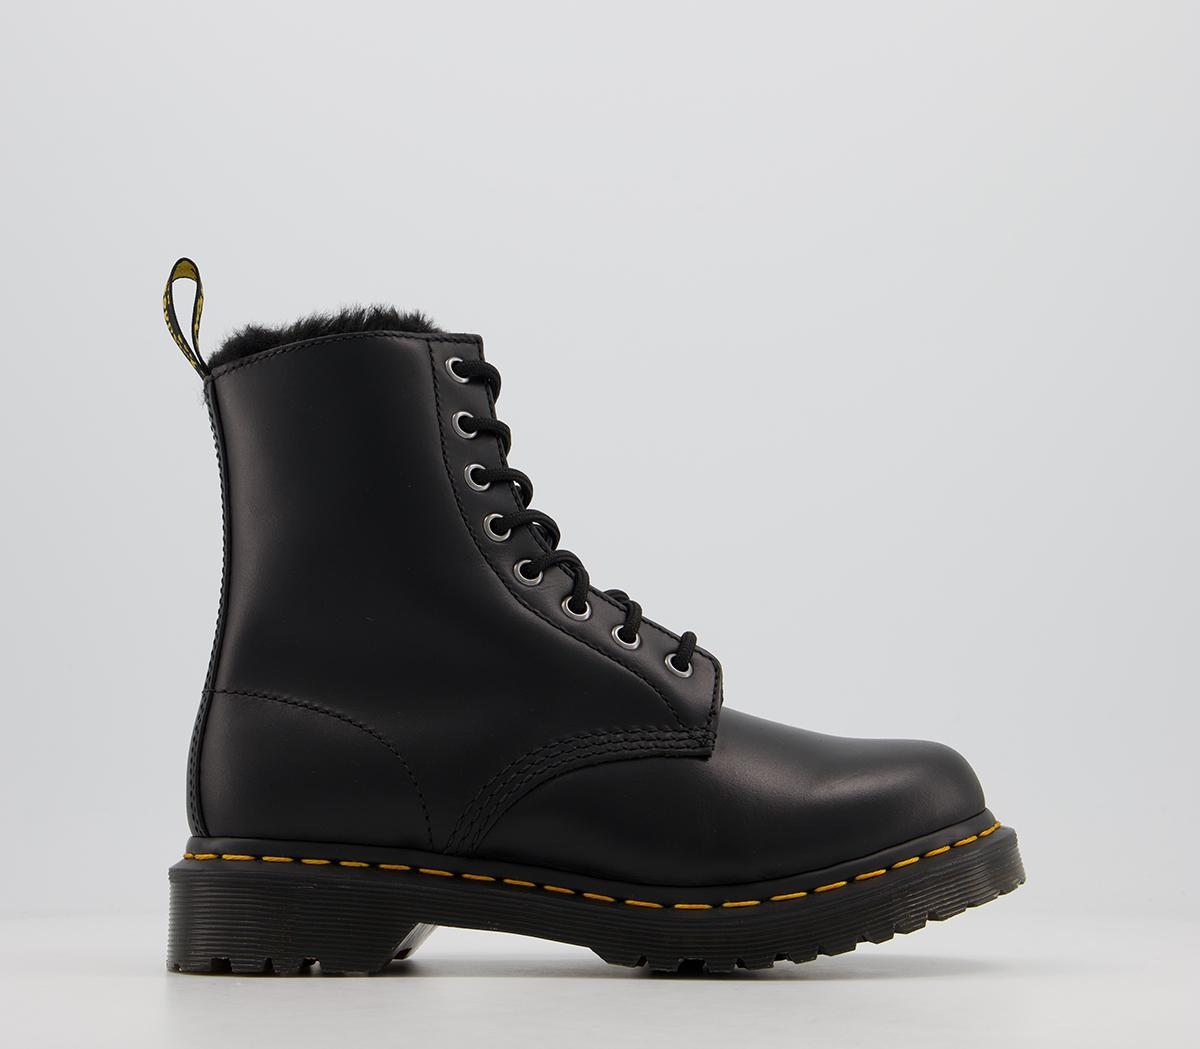 Dr. Martens 1460 Serena 8 Eye Trainers